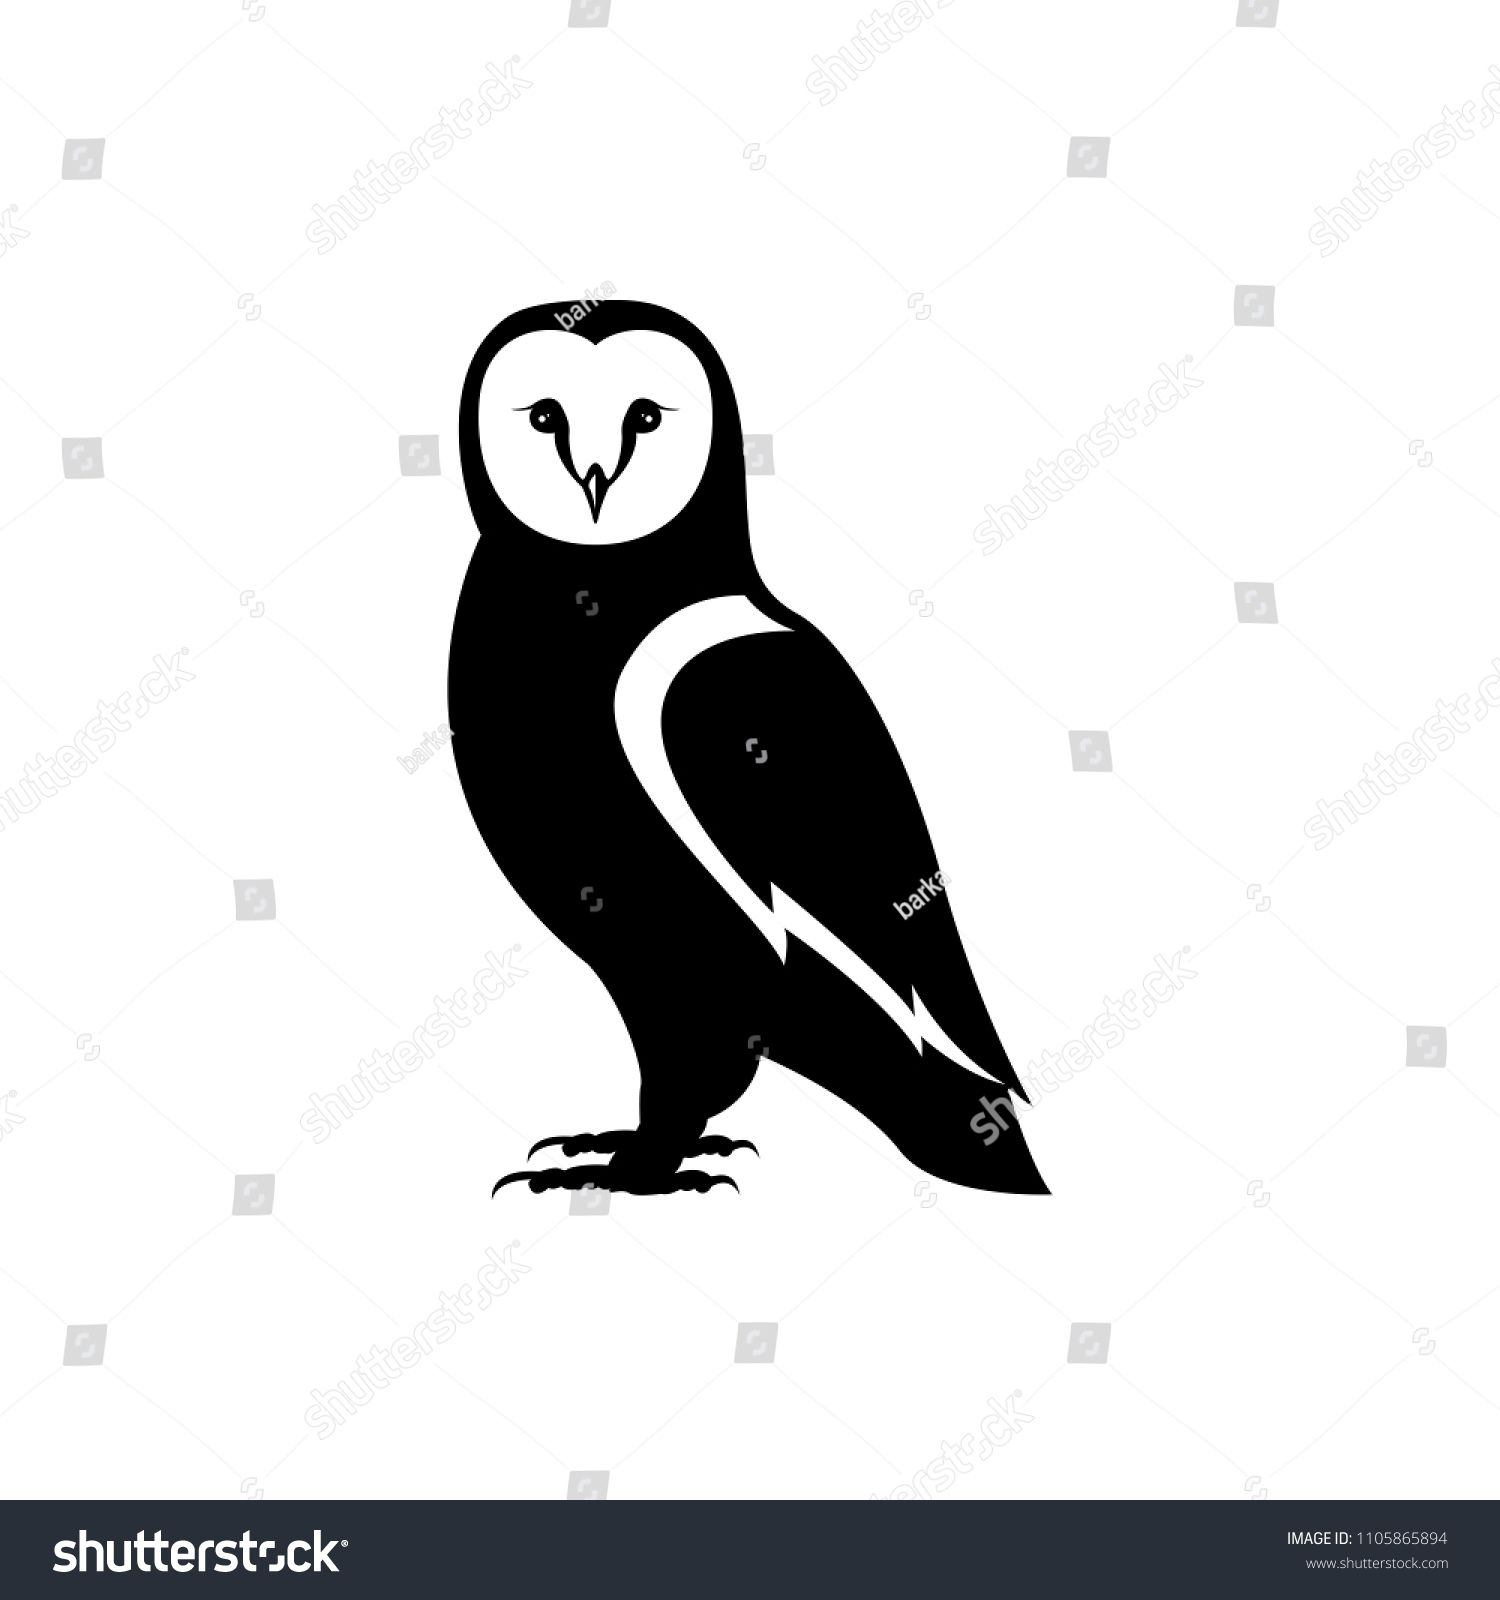 Vector Owl Silhouette Owl Silhouette Owl Images Graphic Design